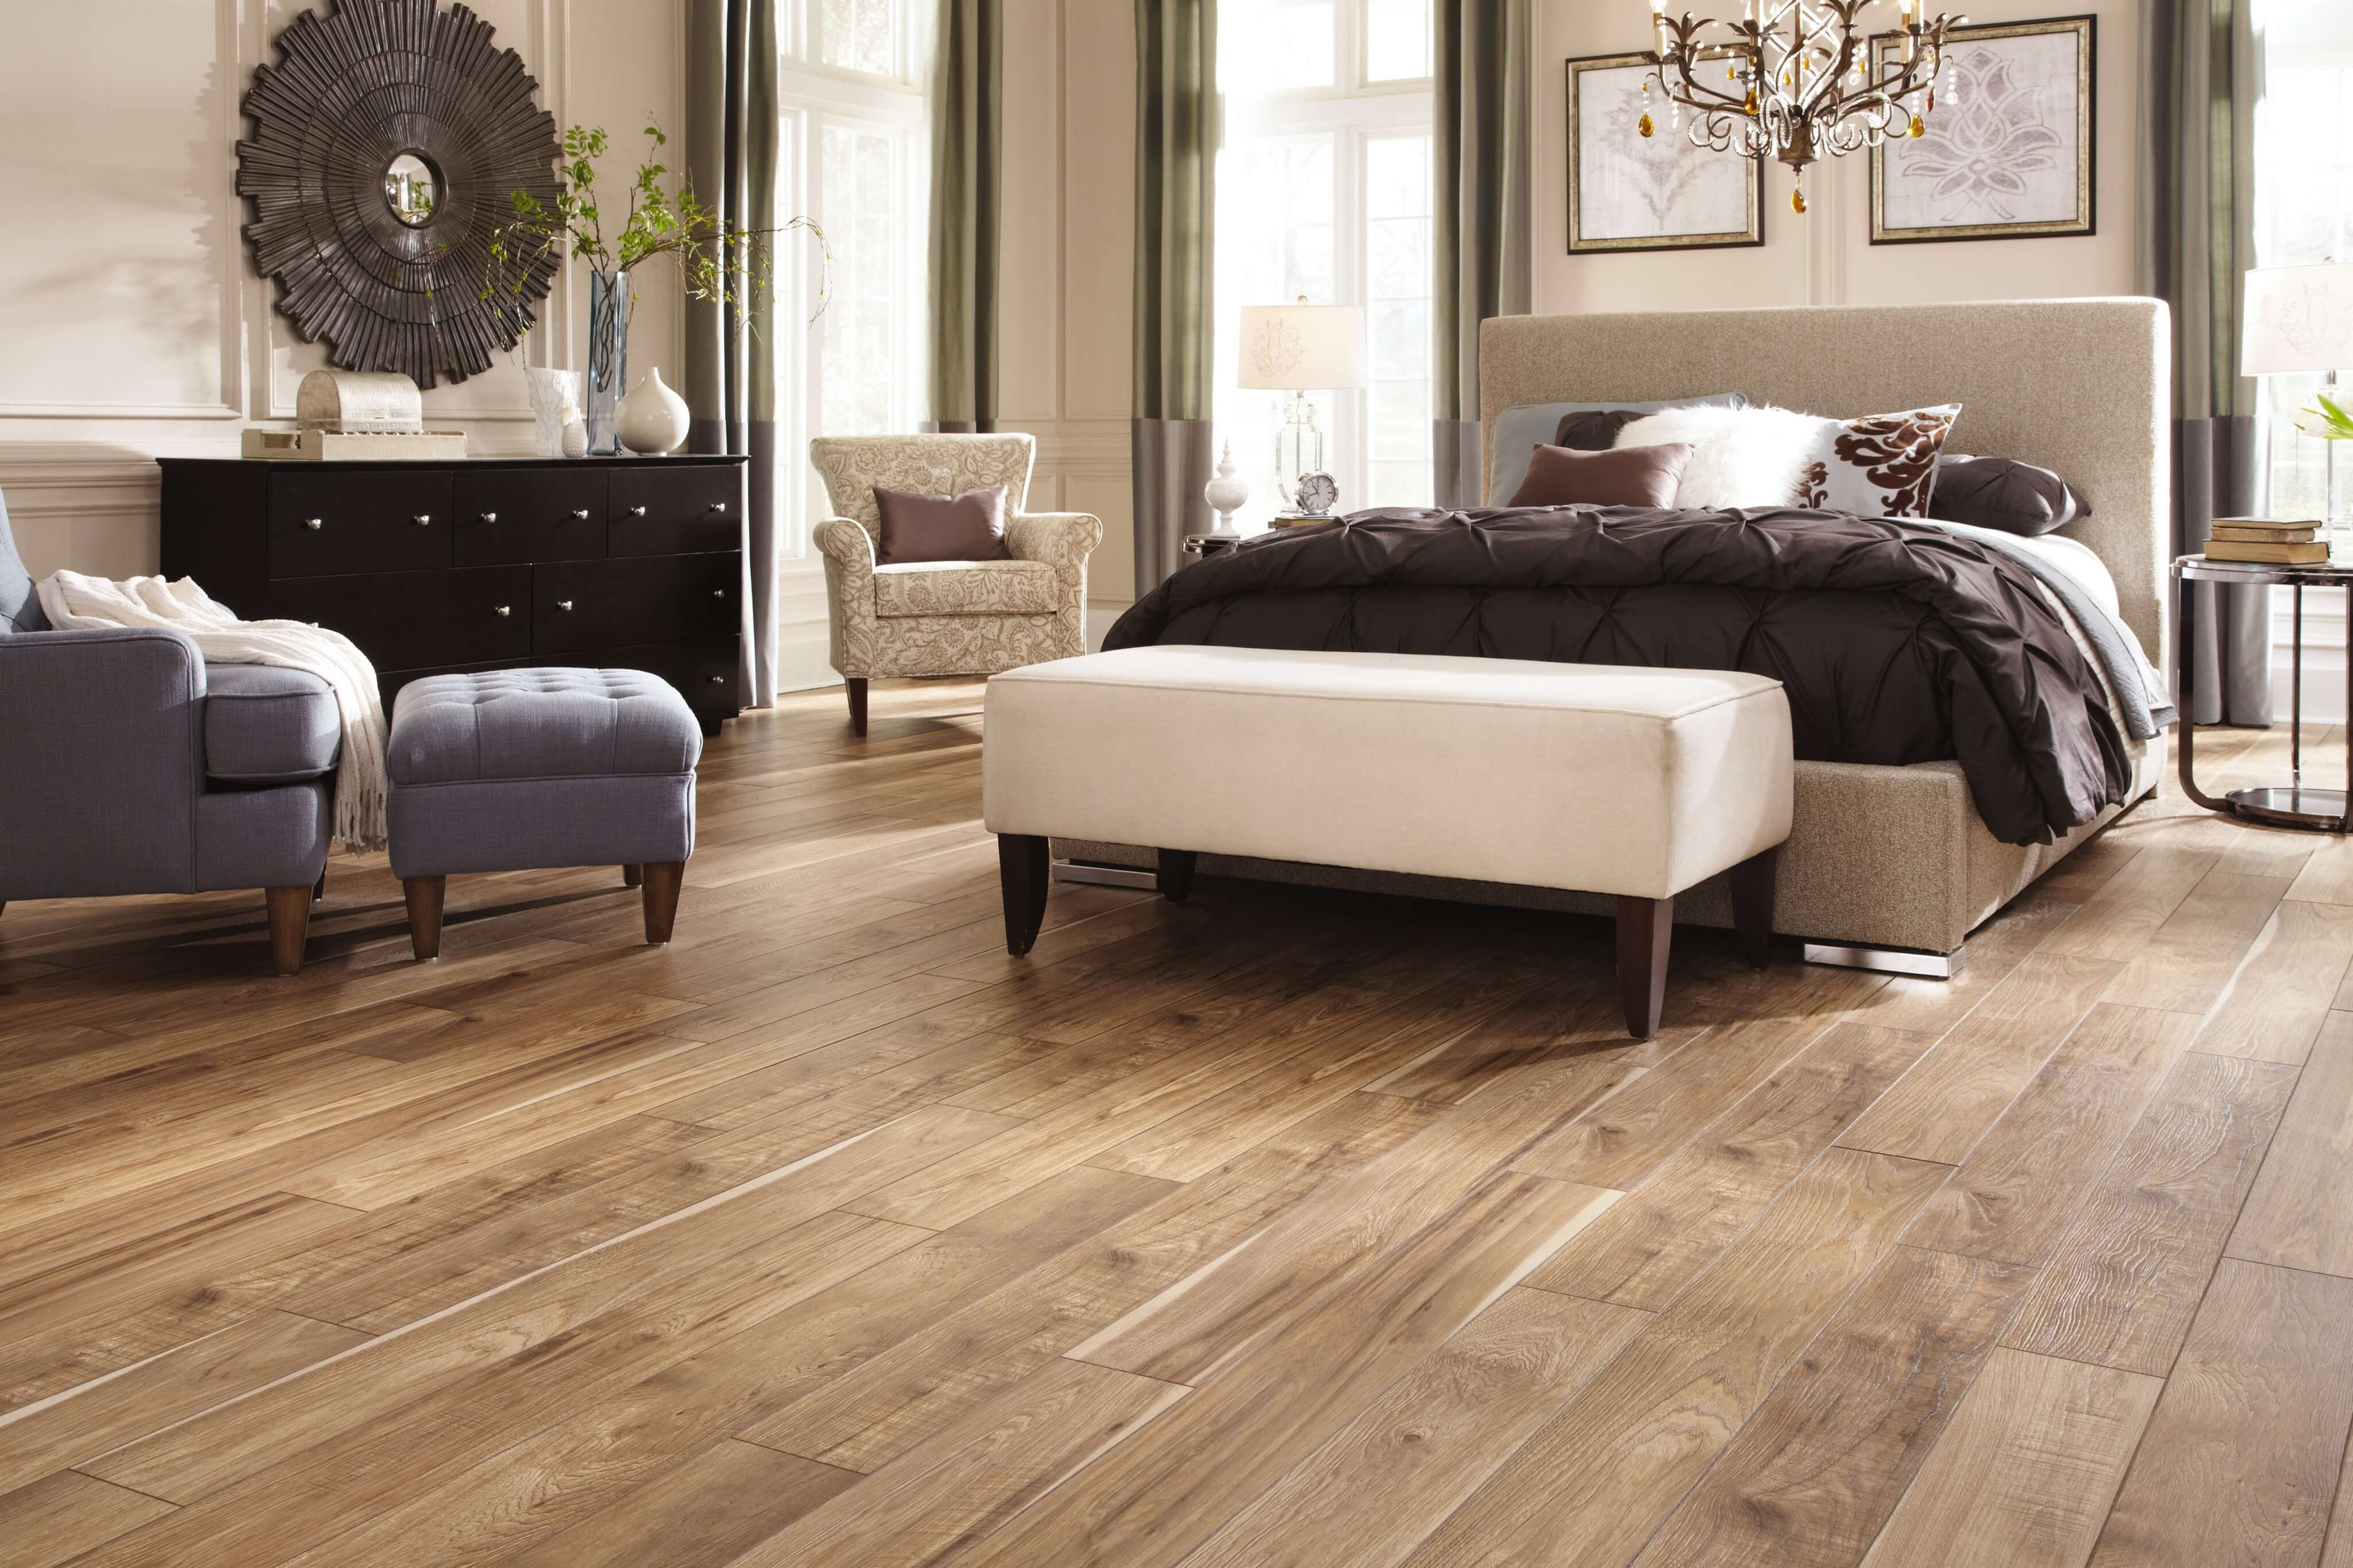 Laminate Flooring Care and Maintenance Tips to Keep Your Floors Looking New